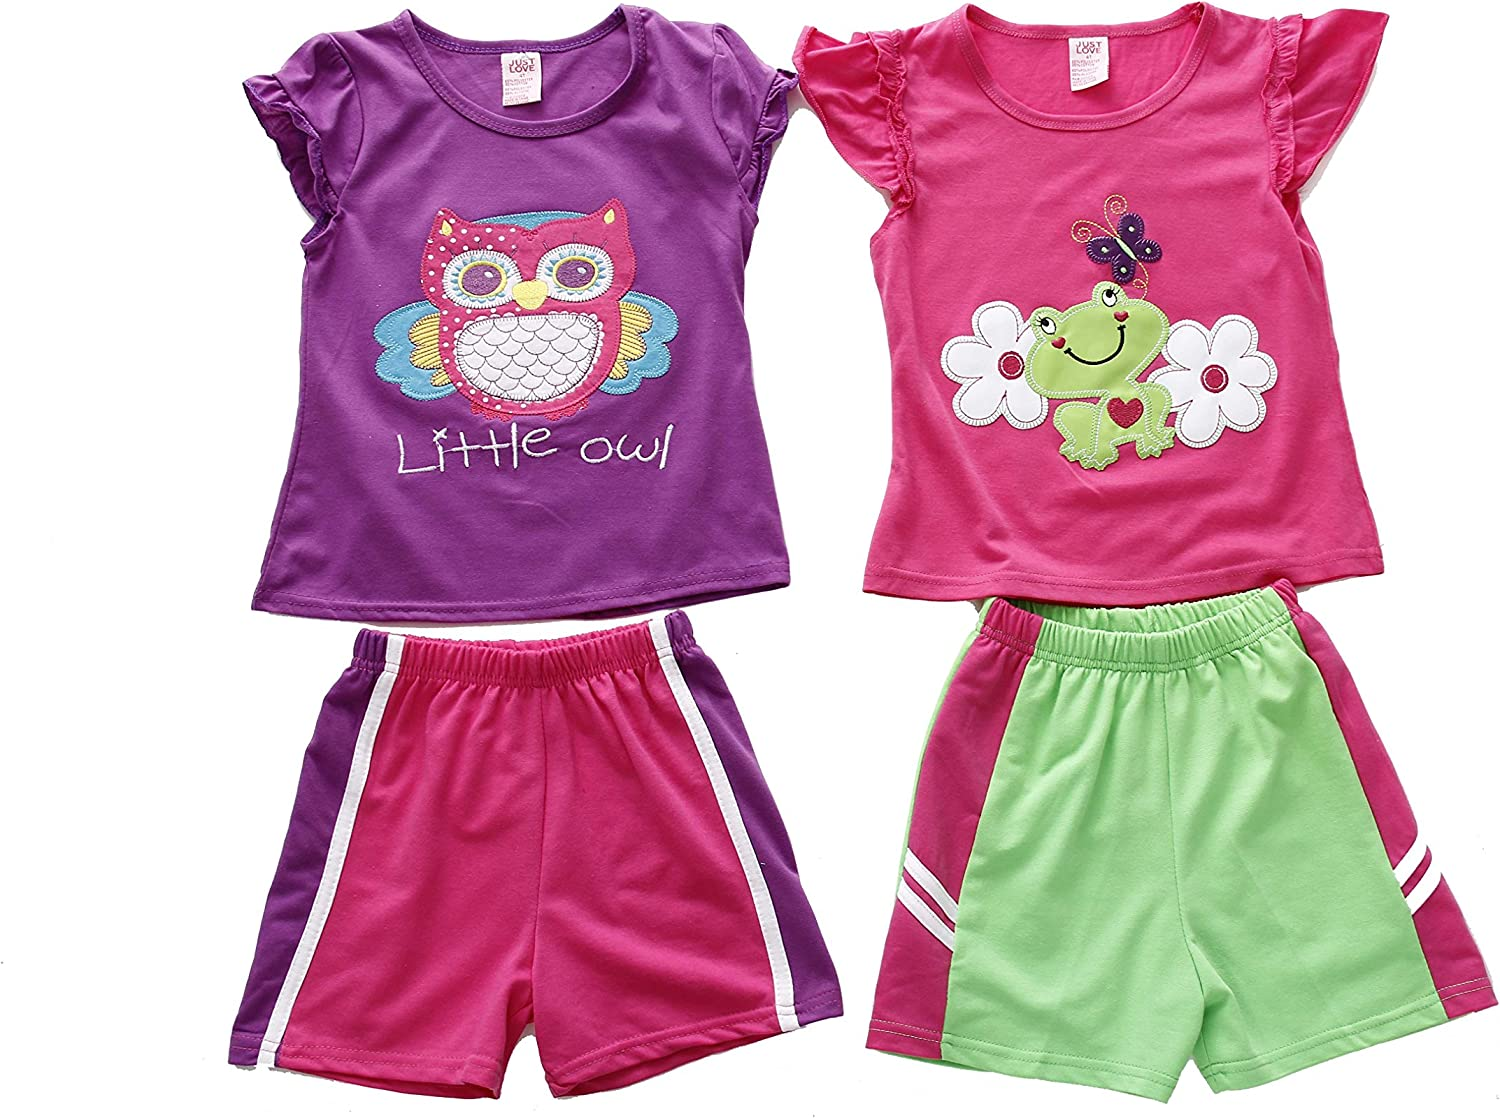 Just Love Two Piece Short Set Pack of 2